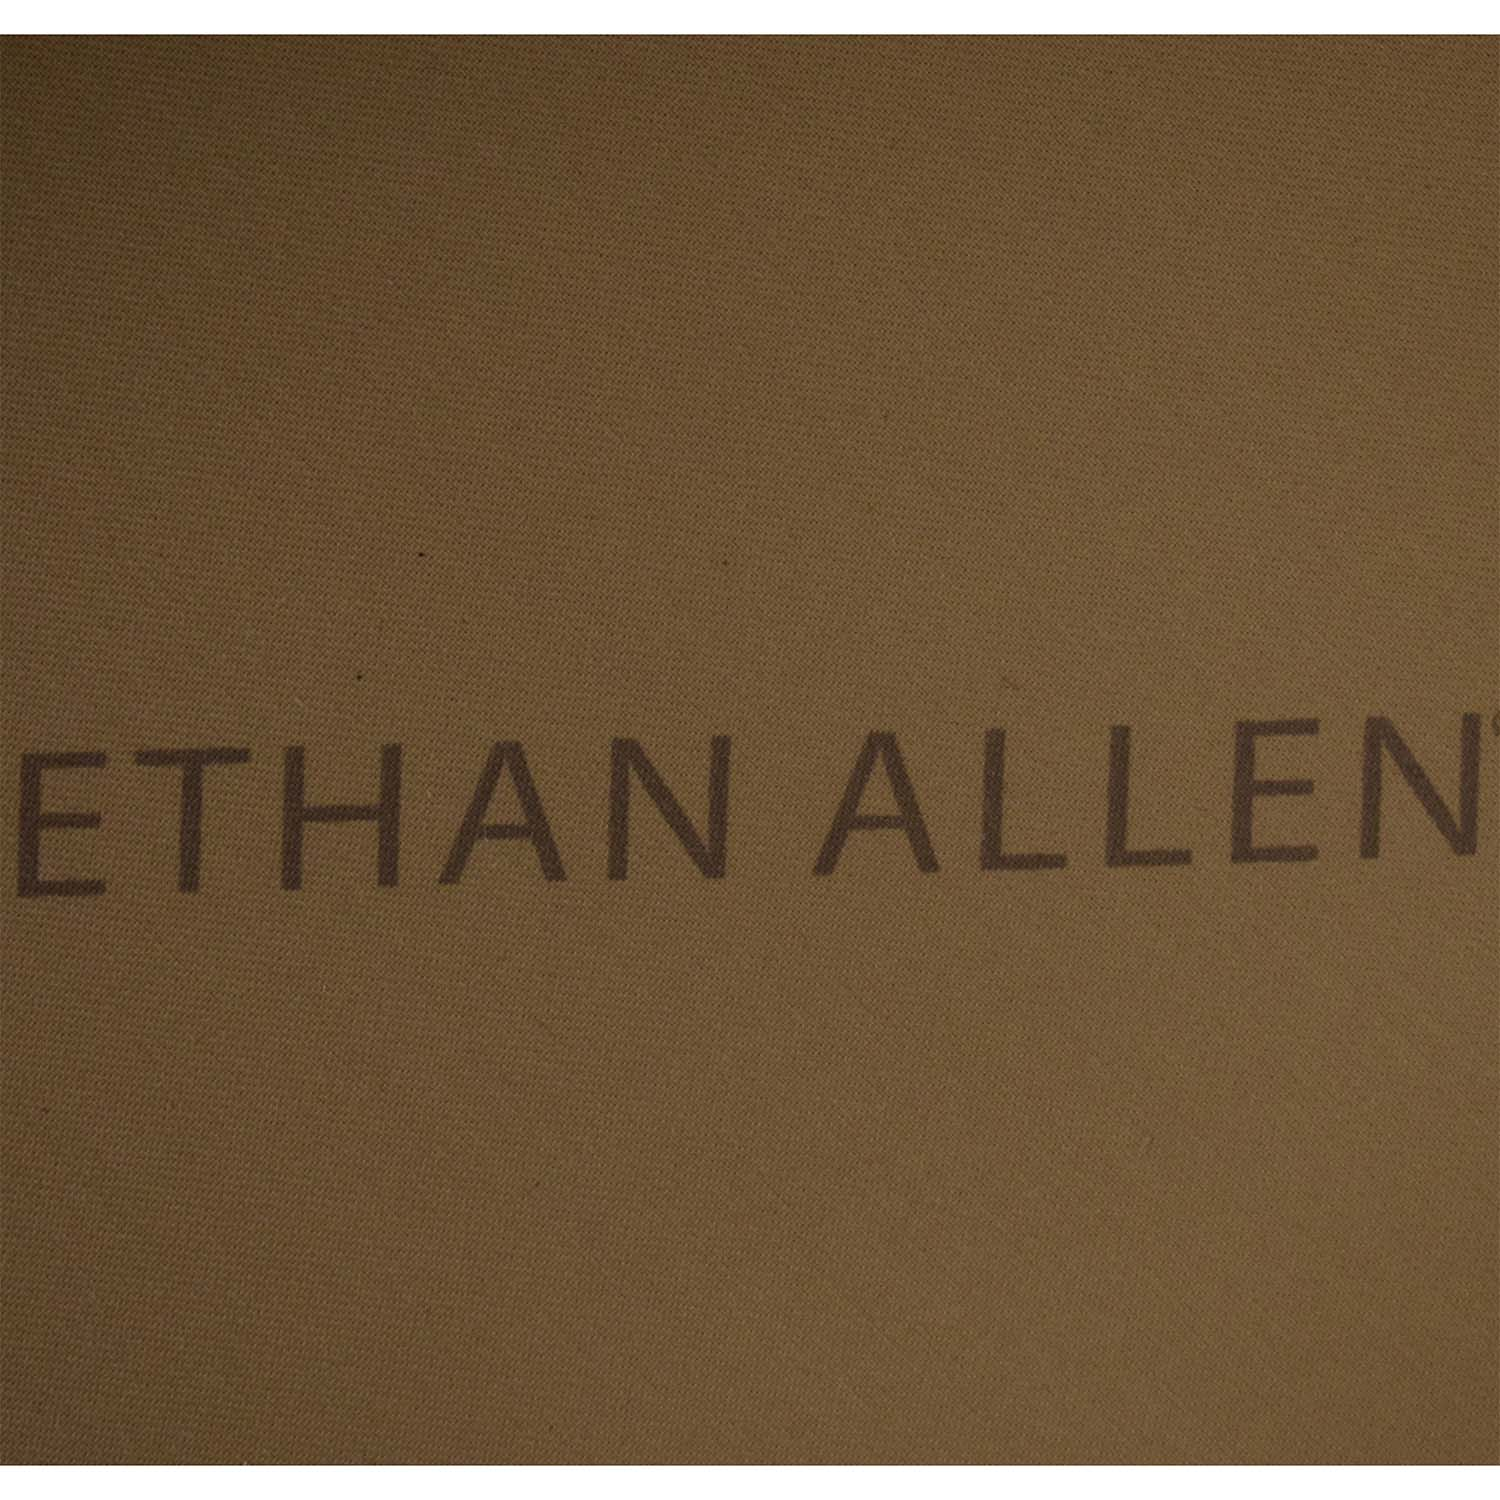 Ethan Allen Ethan Allen Anderson Couch second hand